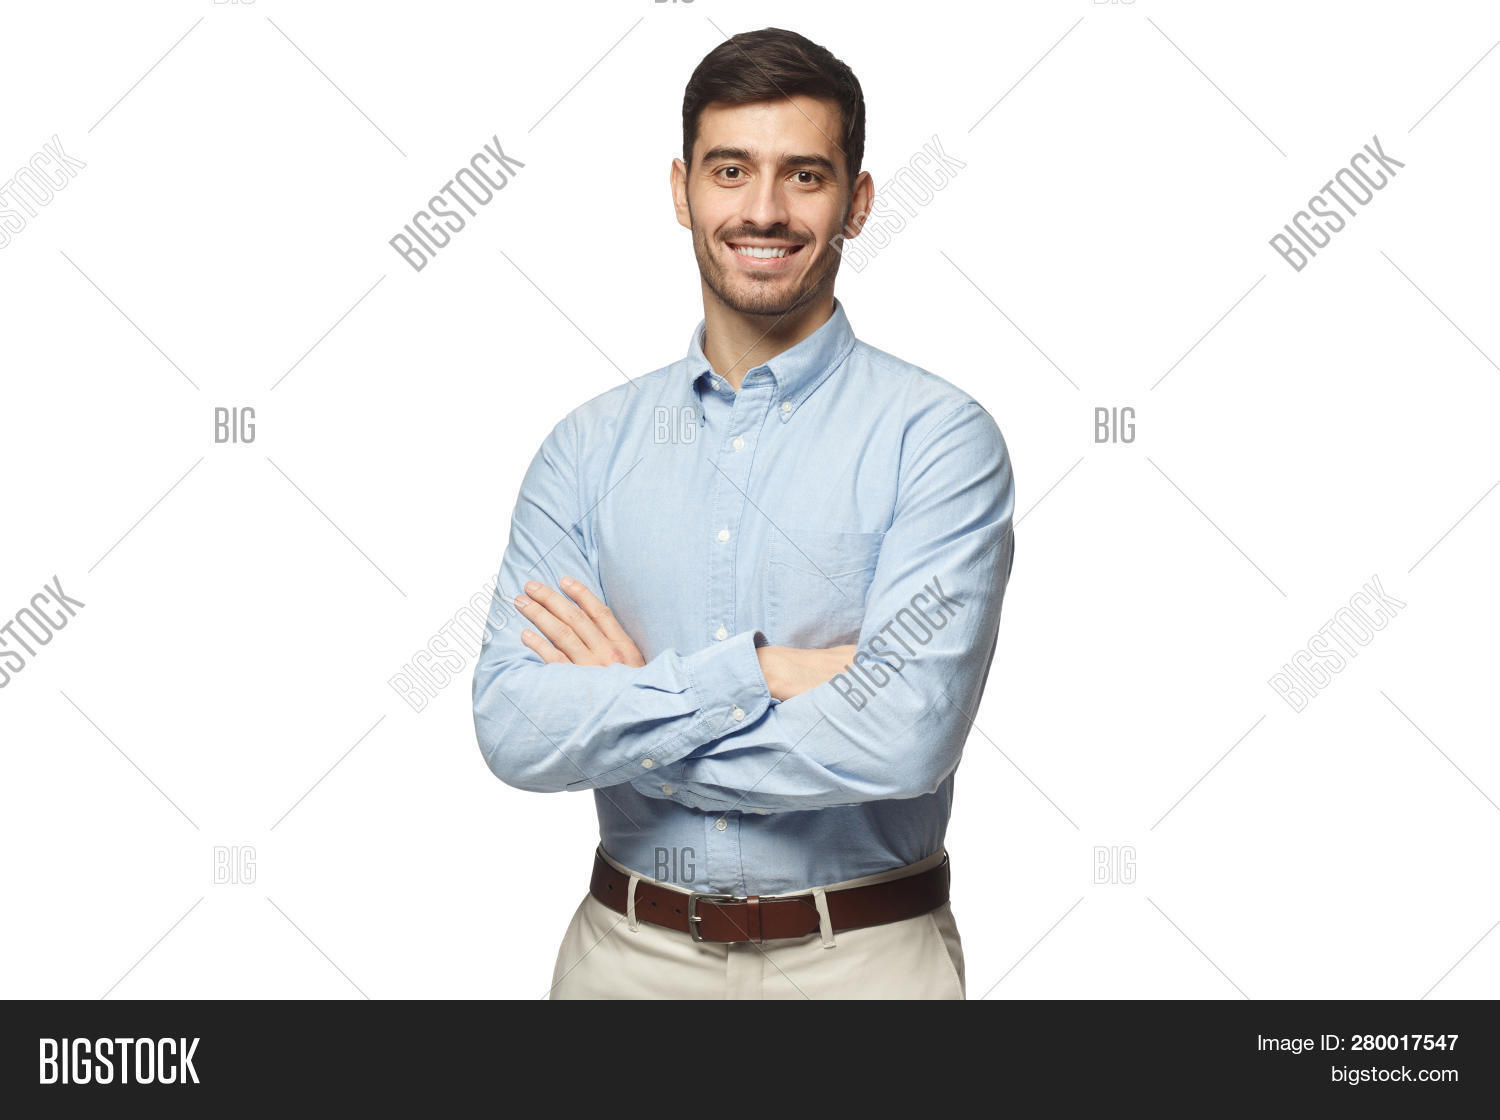 adult,arms,attractive,background,blue,bristle,business,businessman,career,casual,caucasian,ceo,cheerful,confident,corporate,crossed,elegant,executive,handsome,happy,isolated,laughing,leader,male,man,manager,modern,person,portrait,professional,salesman,shirt,smile,smiling,standing,studio,success,successful,white,worker,young